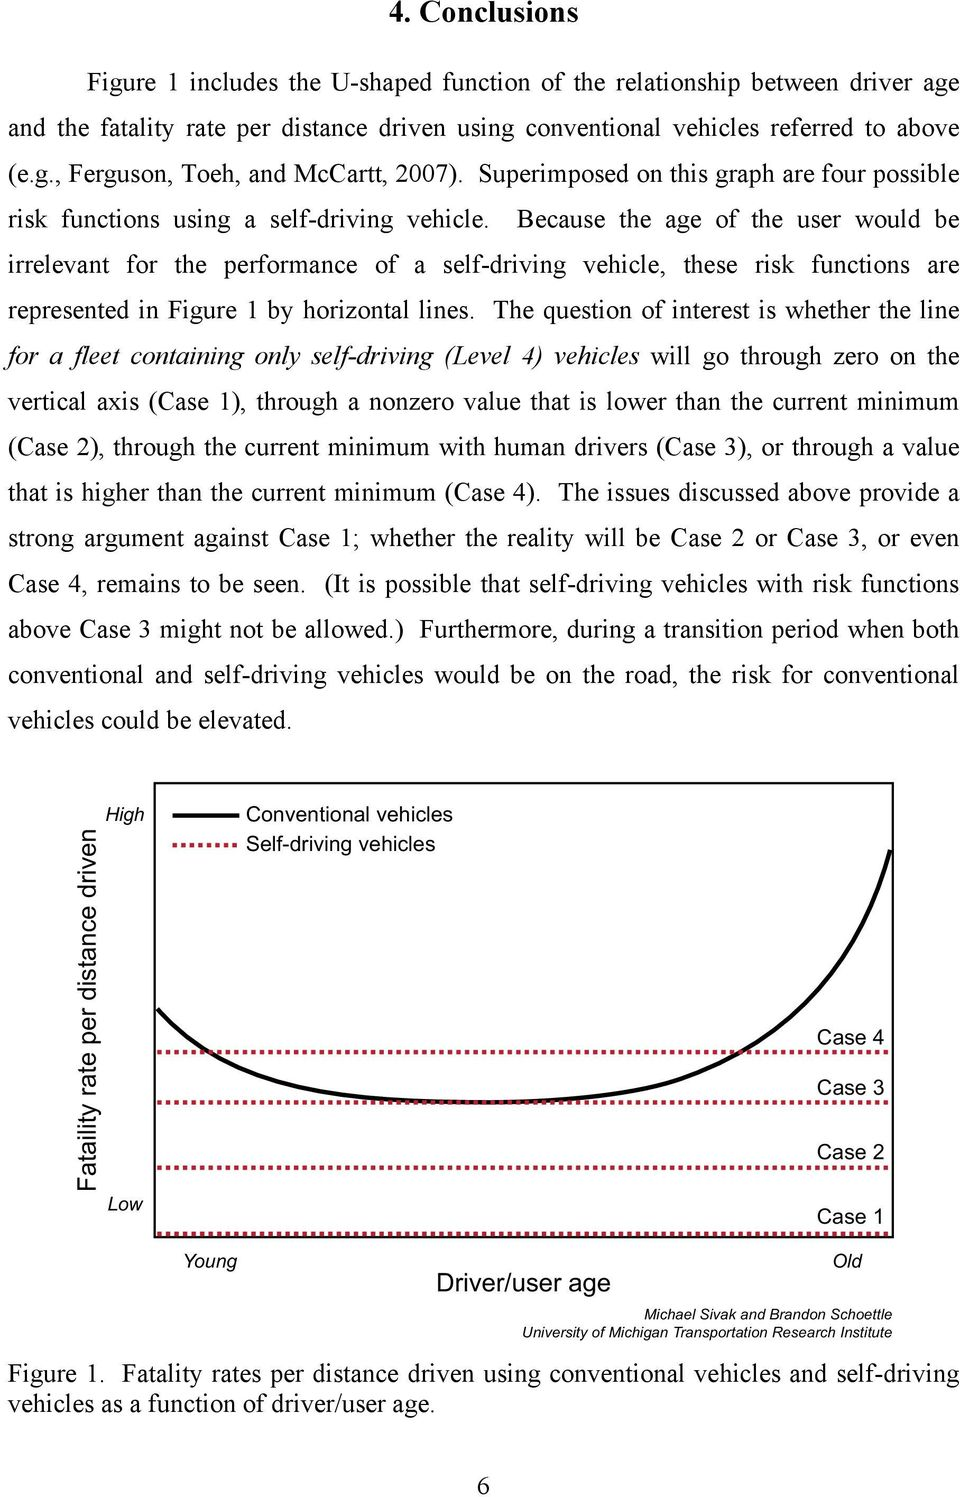 Because the age of the user would be irrelevant for the performance of a self-driving vehicle, these risk functions are represented in Figure 1 by horizontal lines.